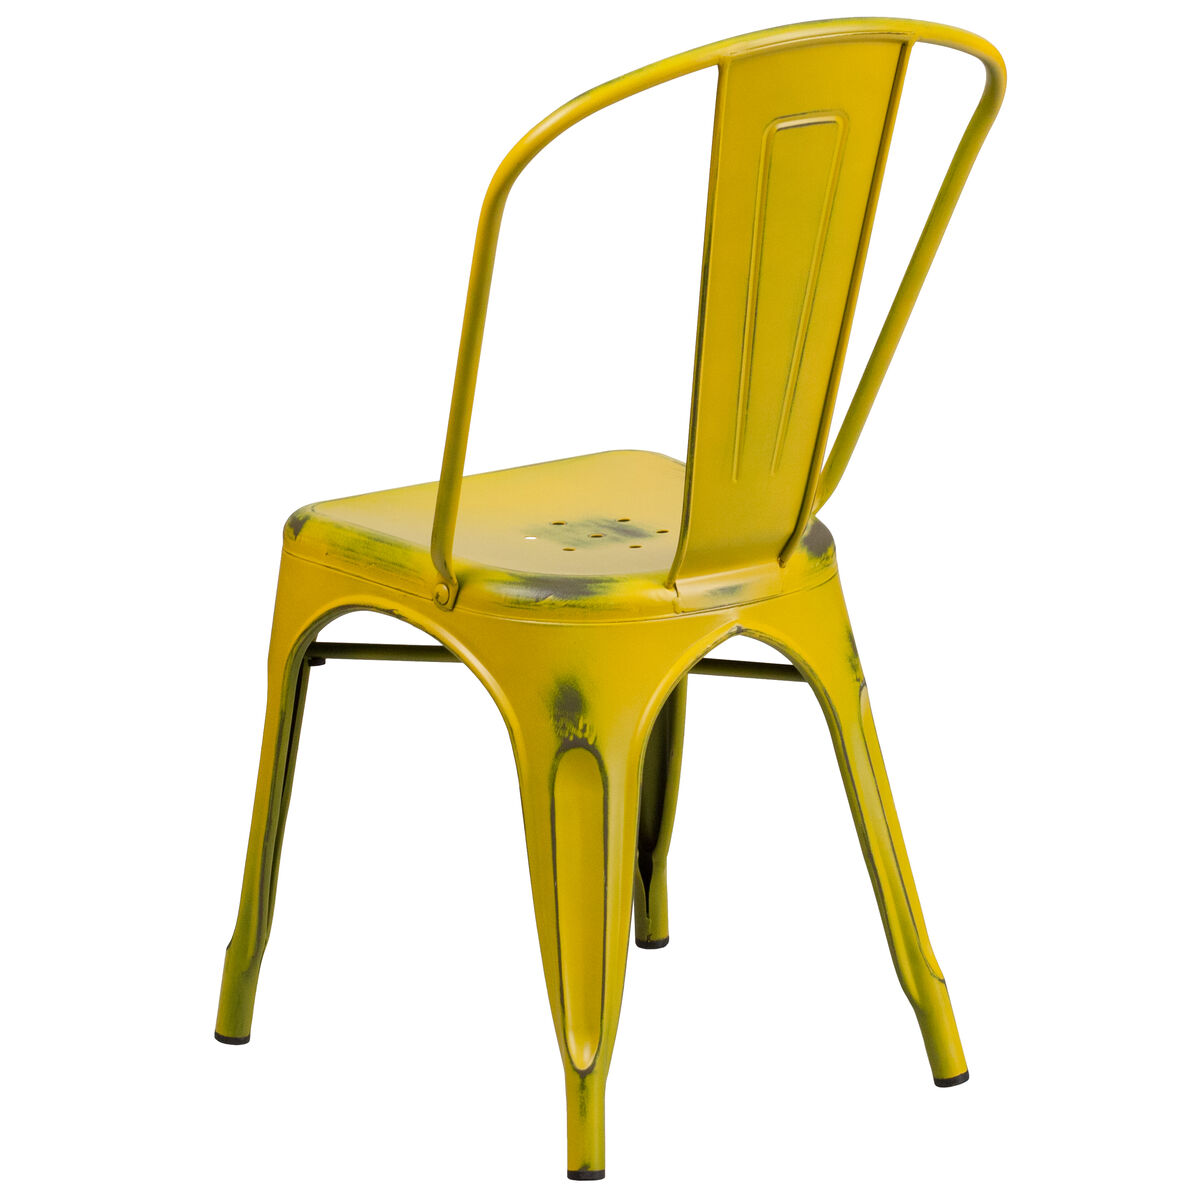 Distressed Yellow Metal Chair Et 3534 Yl Gg